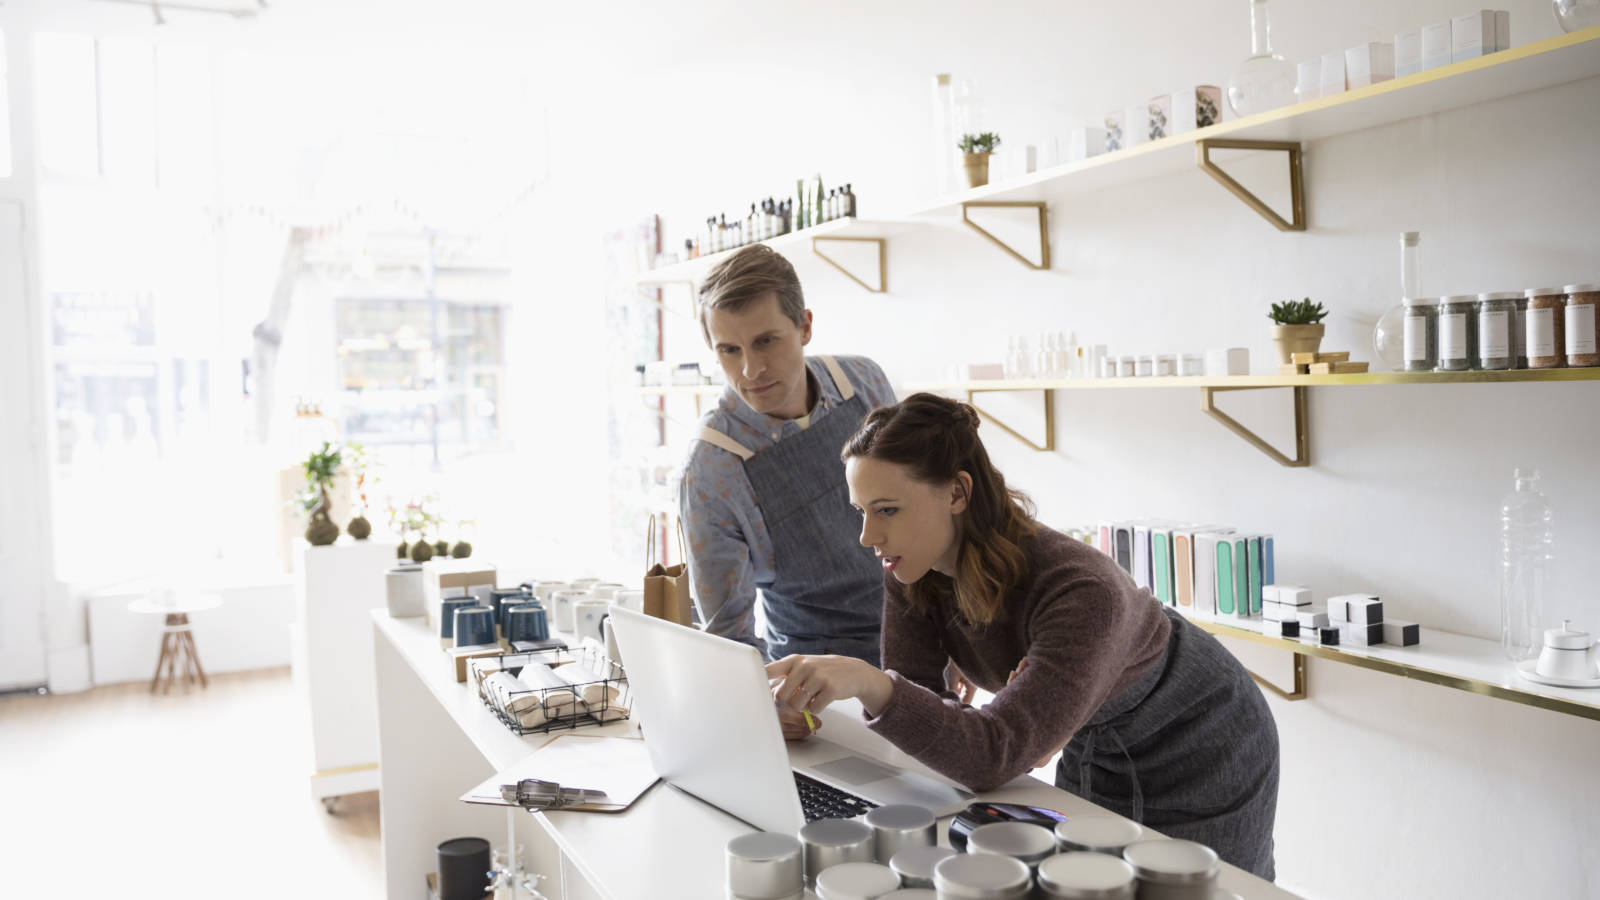 Shop owners using laptop in home fragrances shop